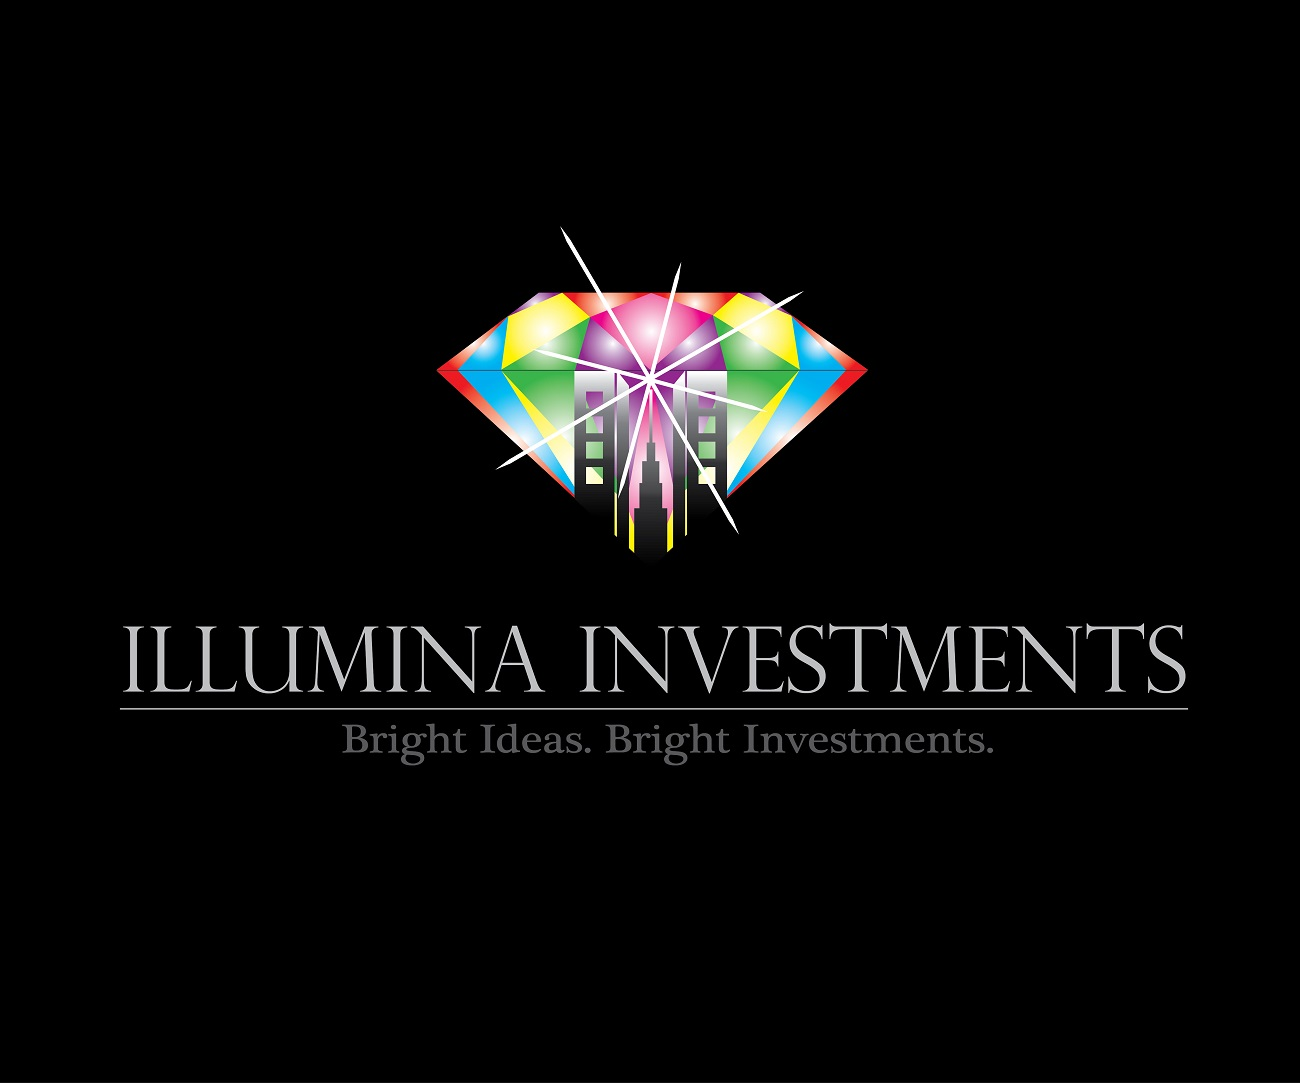 Logo Design by jhunzkie24 - Entry No. 30 in the Logo Design Contest Creative Logo Design for Illumina Investments.